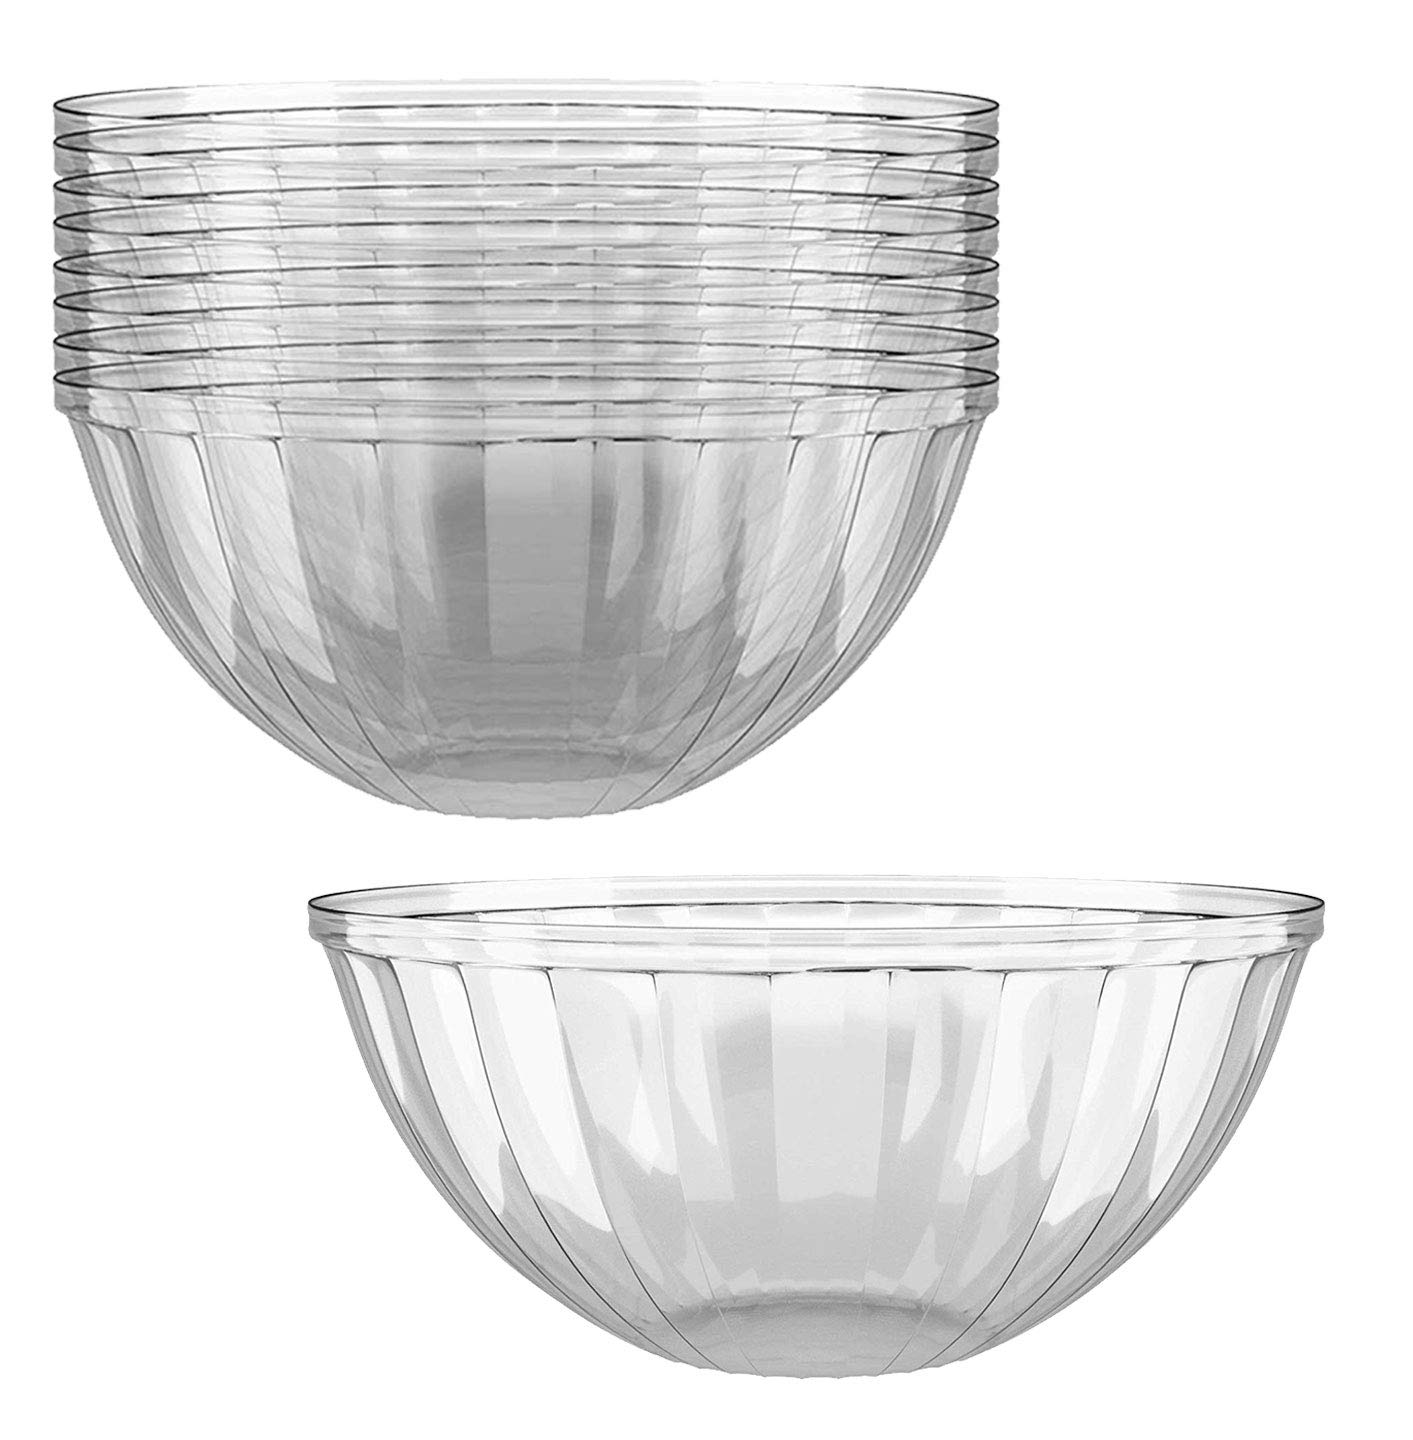 Clear Plastic Serving Bowls for Parties | 48 Oz. 12 Pack | Round Disposable Serving Bowls | Clear Chip Bowls | Party Snack Bowls | Plastic Candy Dish | Salad Serving Containers | Large Candy Bowls by Prestee